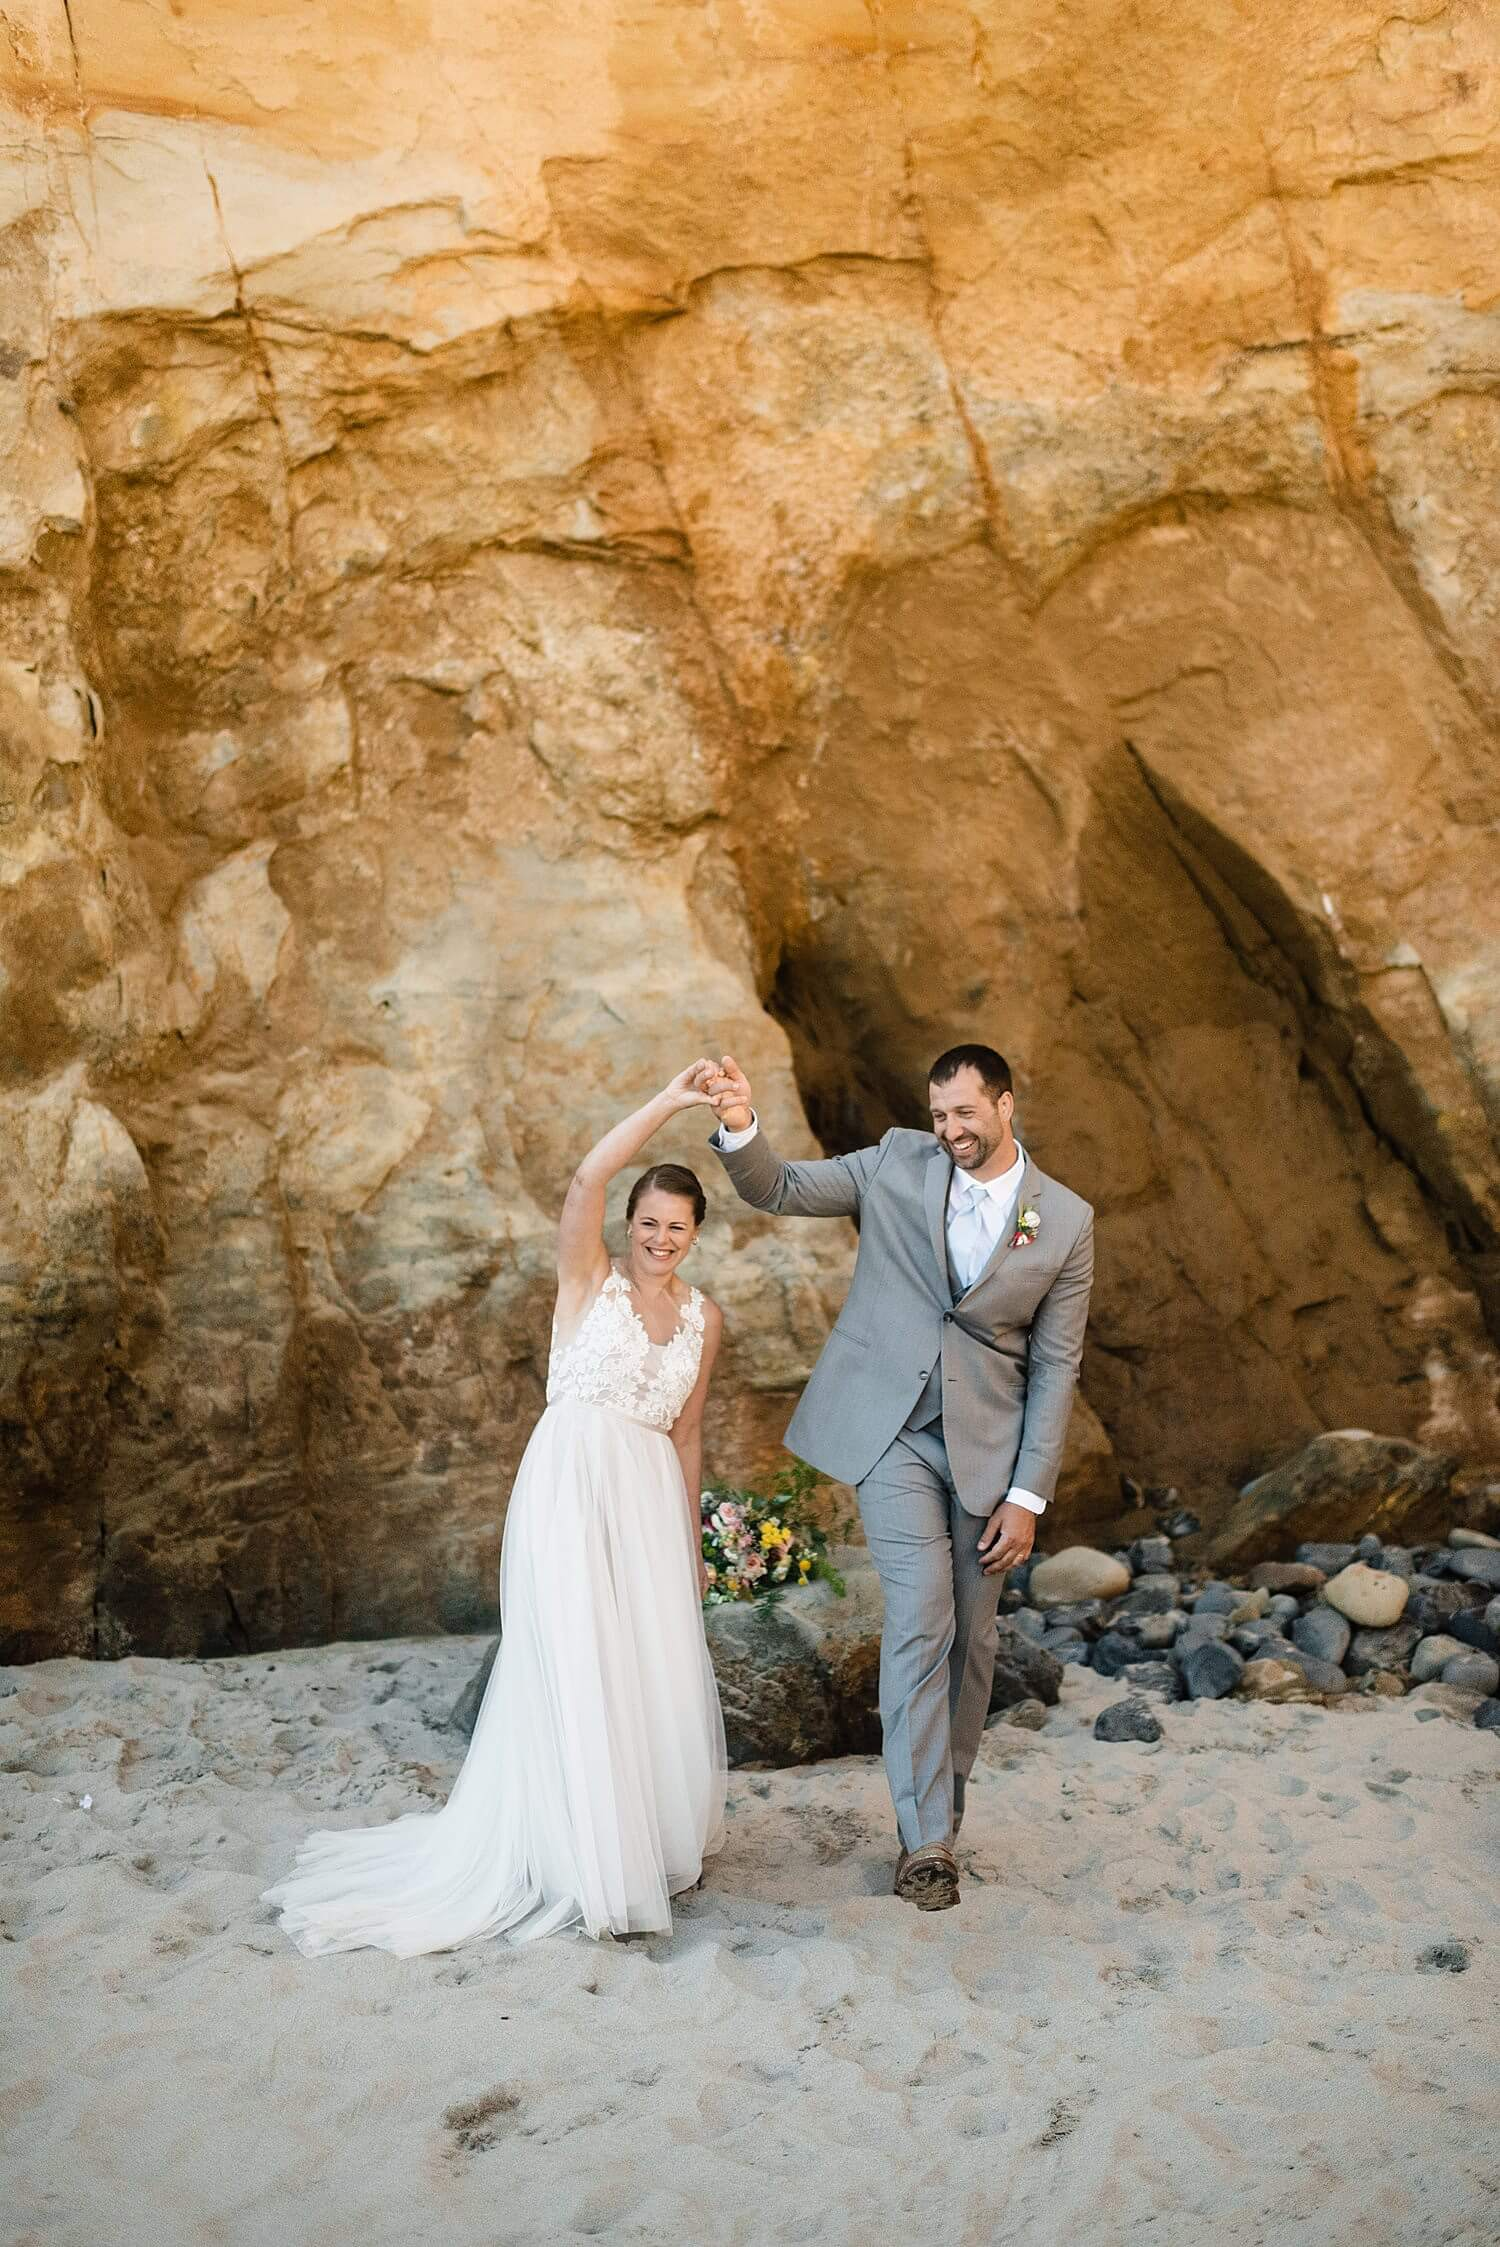 Oregon Coast Elopement,adventure elopement photographer,avenue of the giants,california,cape kiwanda,elope,elopement,intimate wedding,jedediah smith,national park,norcal,oregon,oregon coast wedding,oregon elopement,pacific city,prairie creek,redwoods,small wedding,state park,